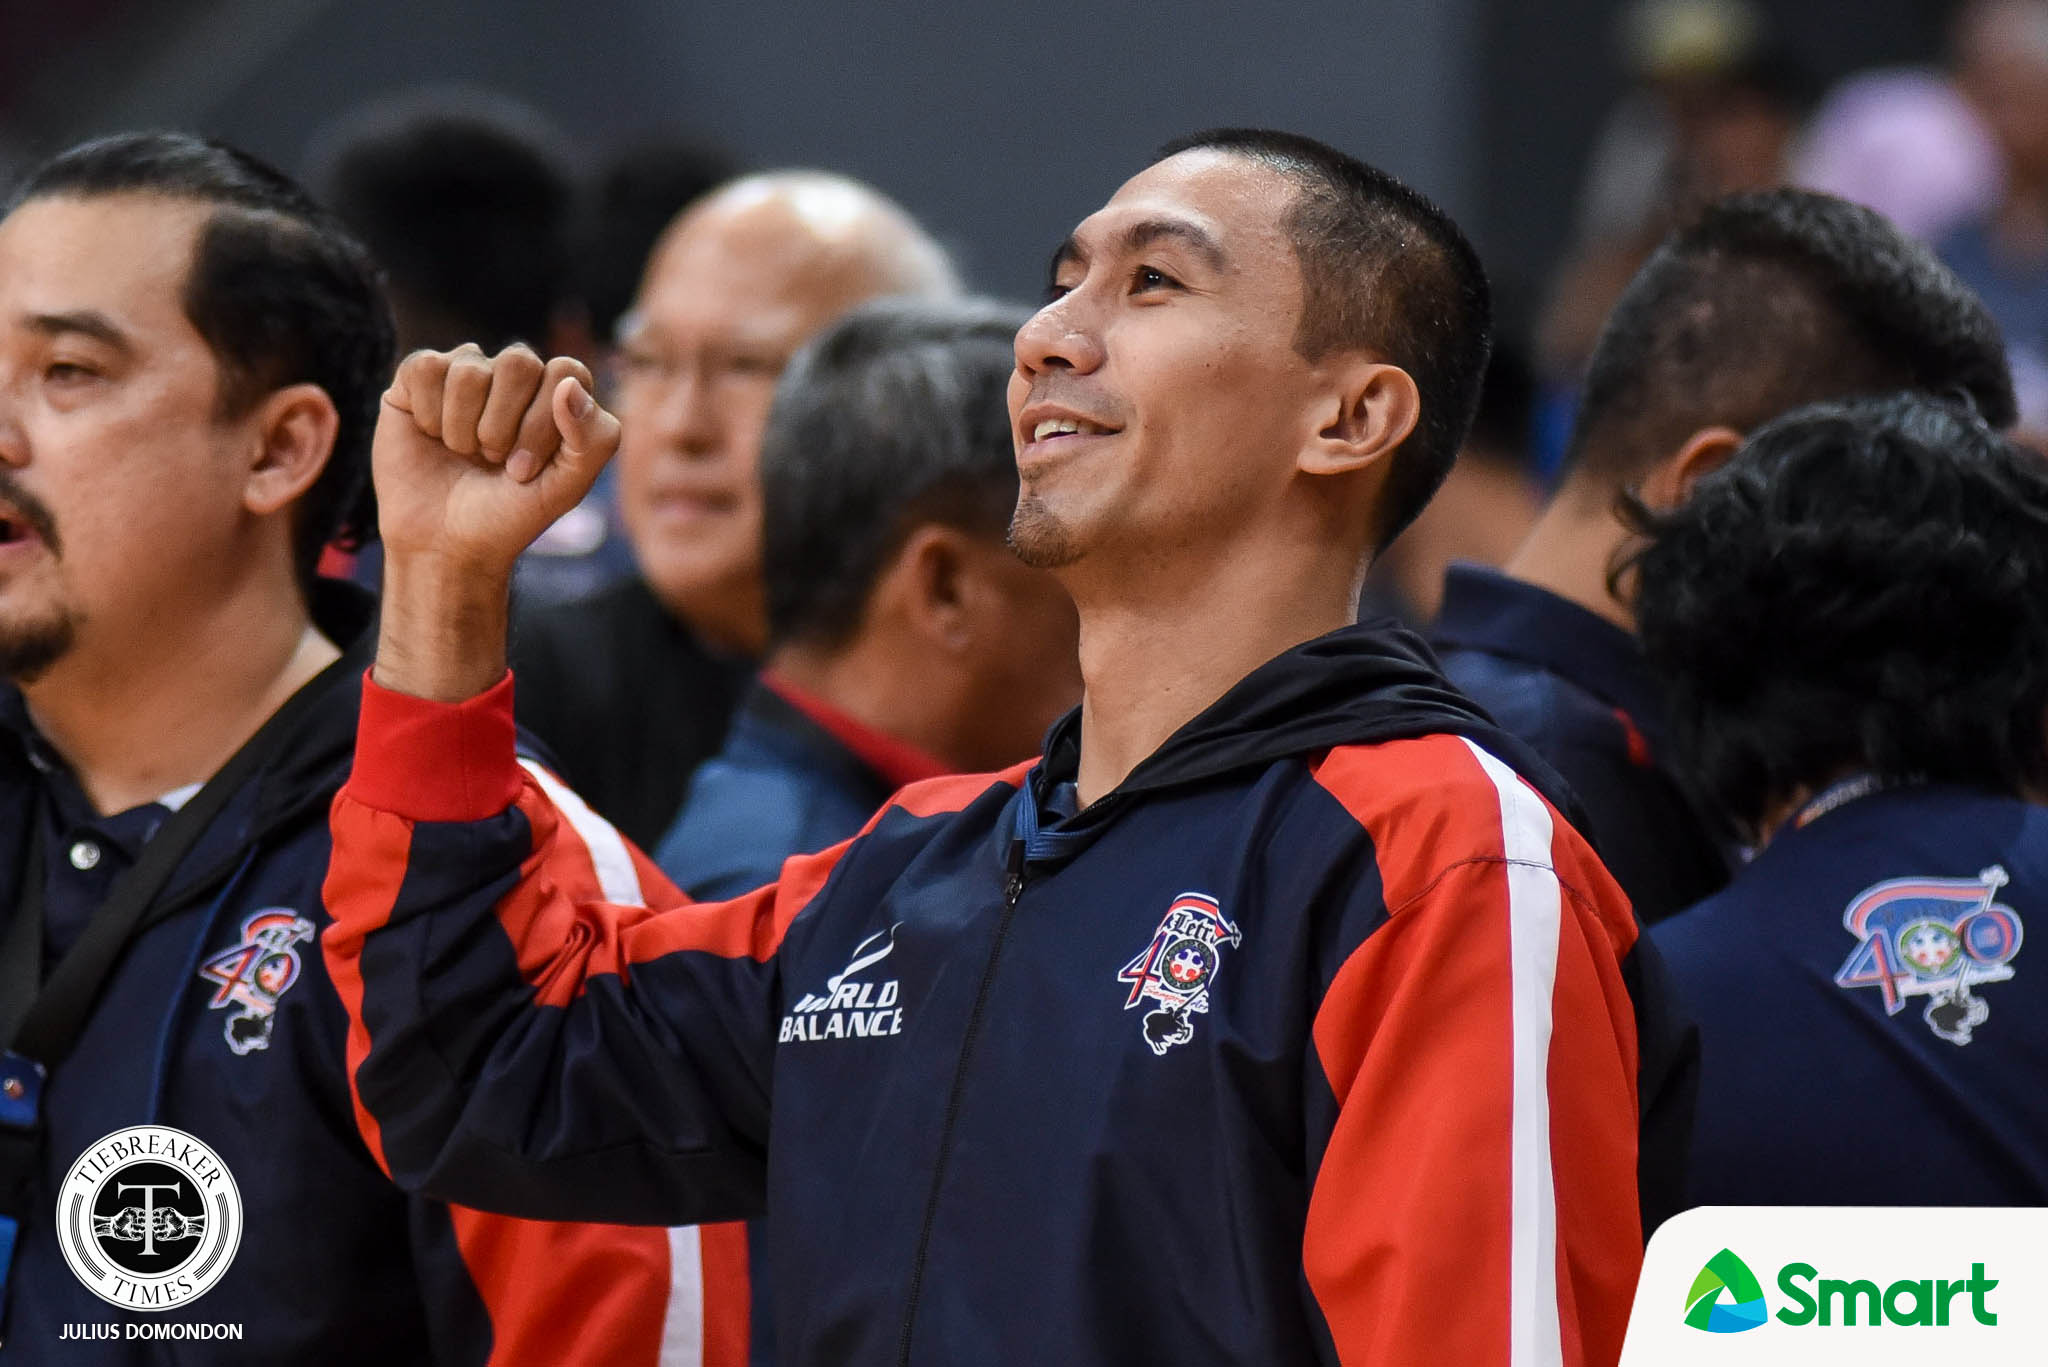 Tiebreaker Times LA Tenorio has mixed emotions in Letran-San Beda clash Basketball CSJL NCAA News SBC  NCAA Season 95 Seniors Basketball NCAA Season 95 Letran Seniors Basketball LA Tenorio